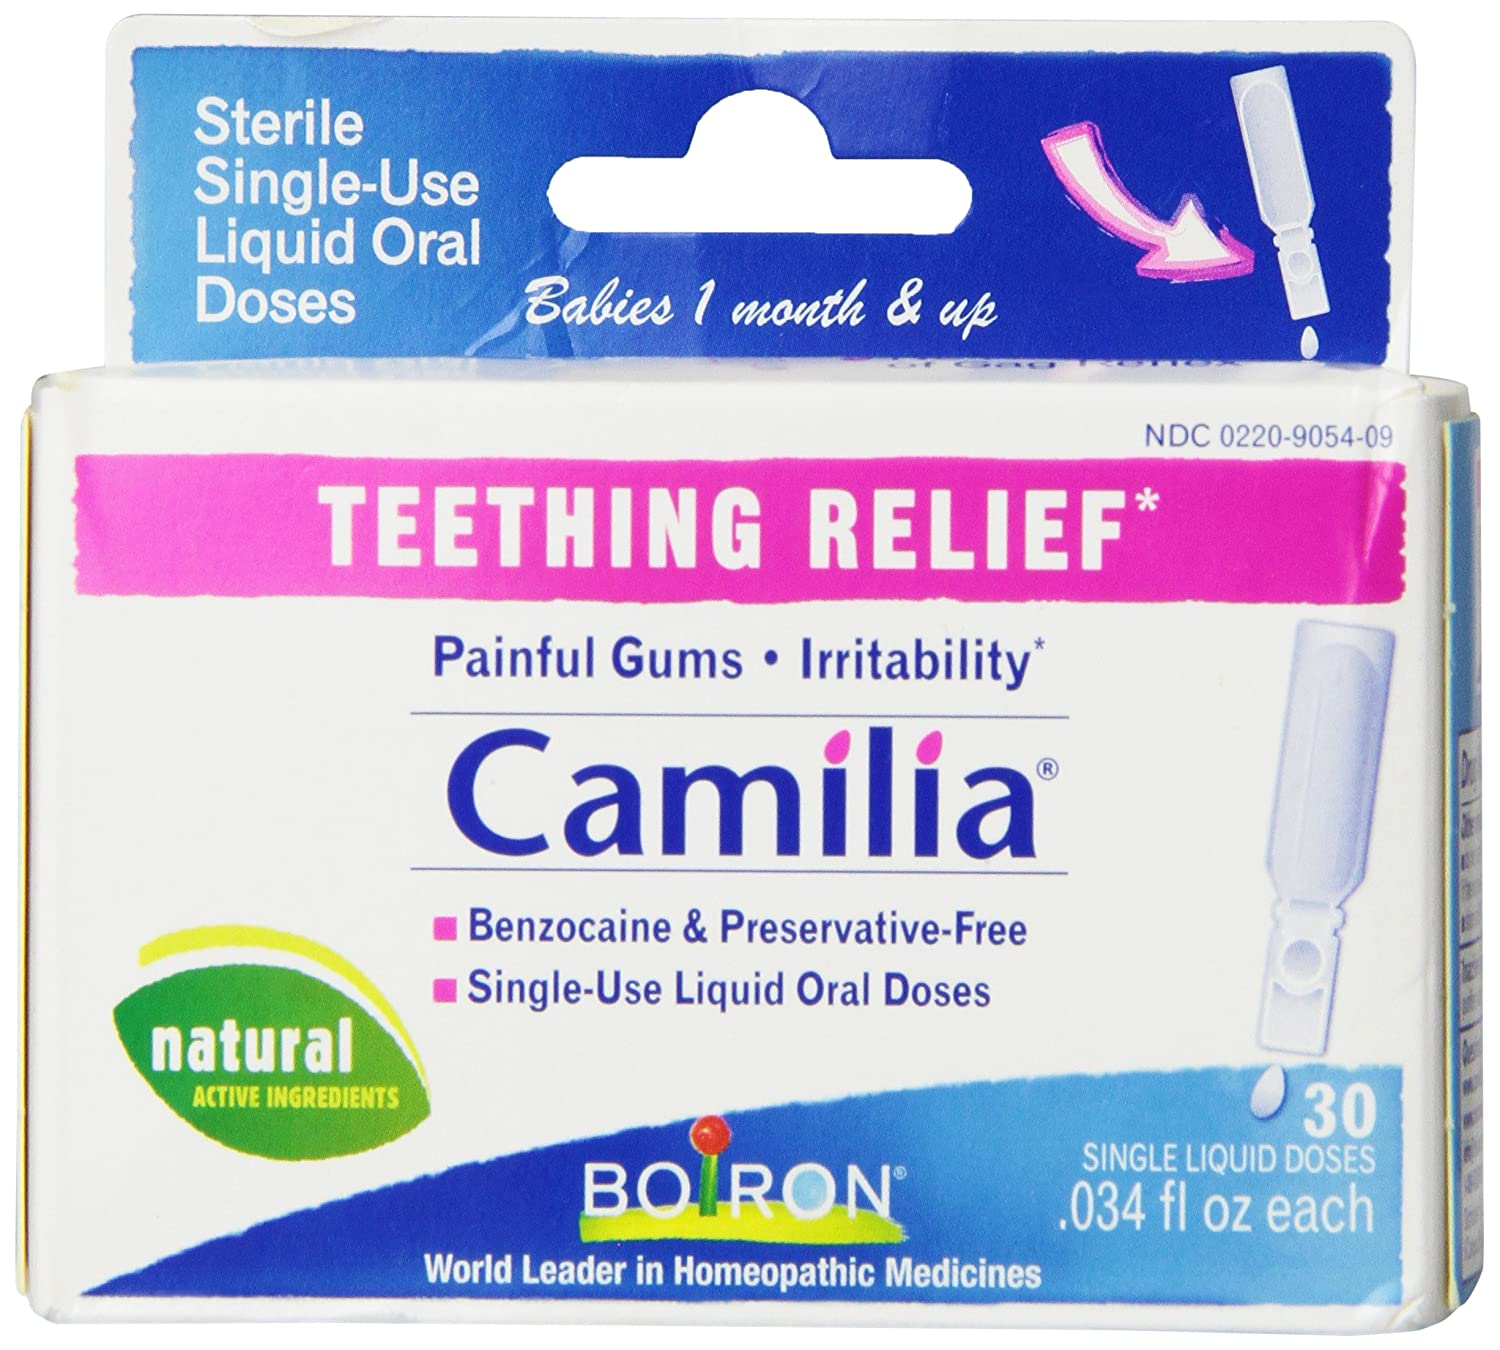 Does camilia work for teething